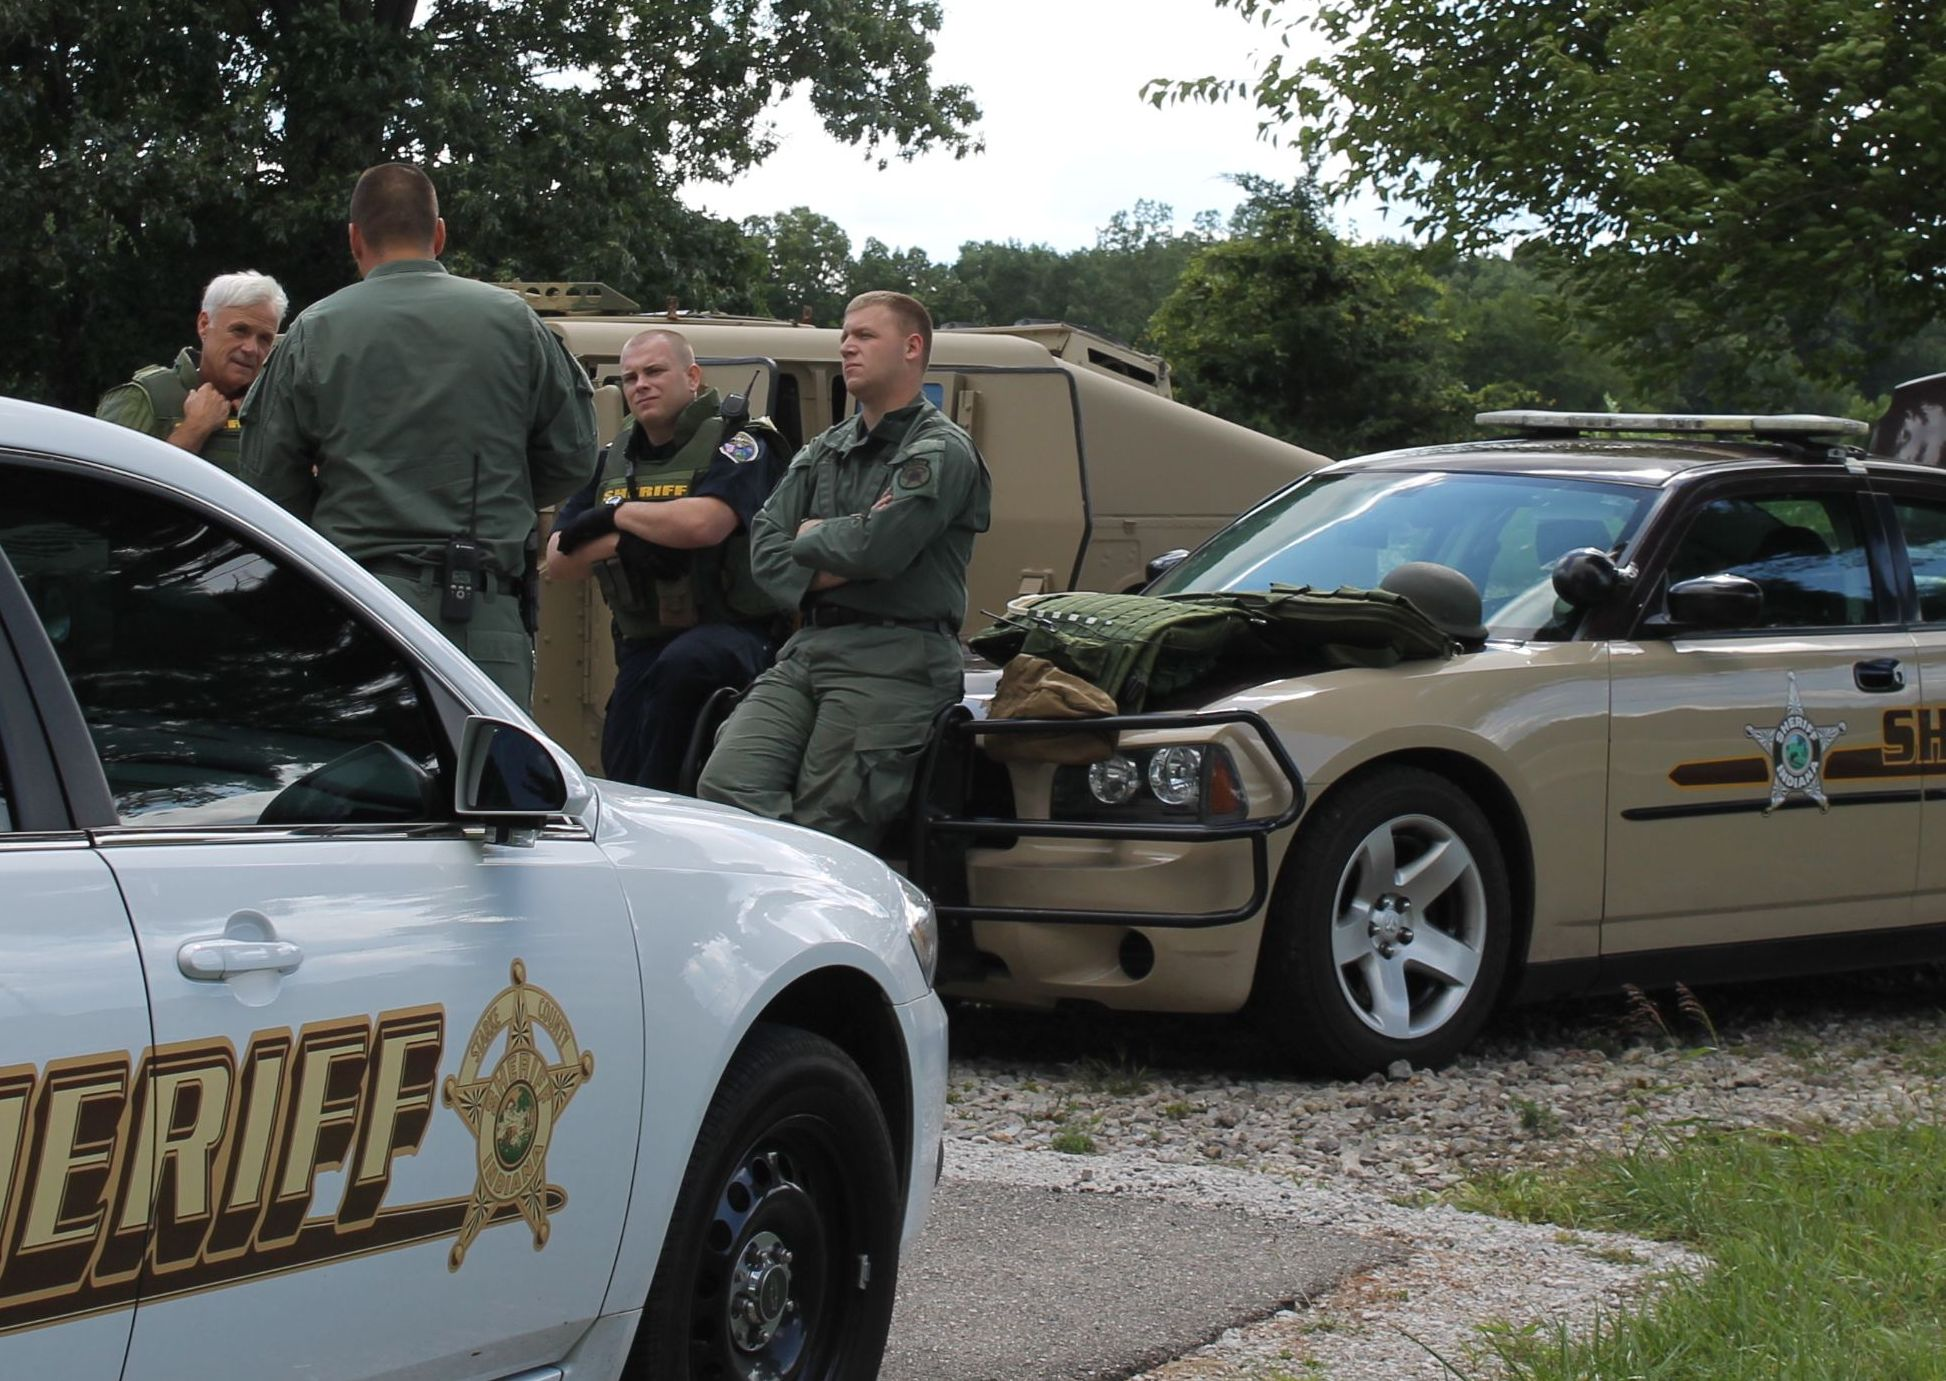 Indiana pulaski county francesville - Swat Team Members Debrief After Tuesday S Call Out In North Judson